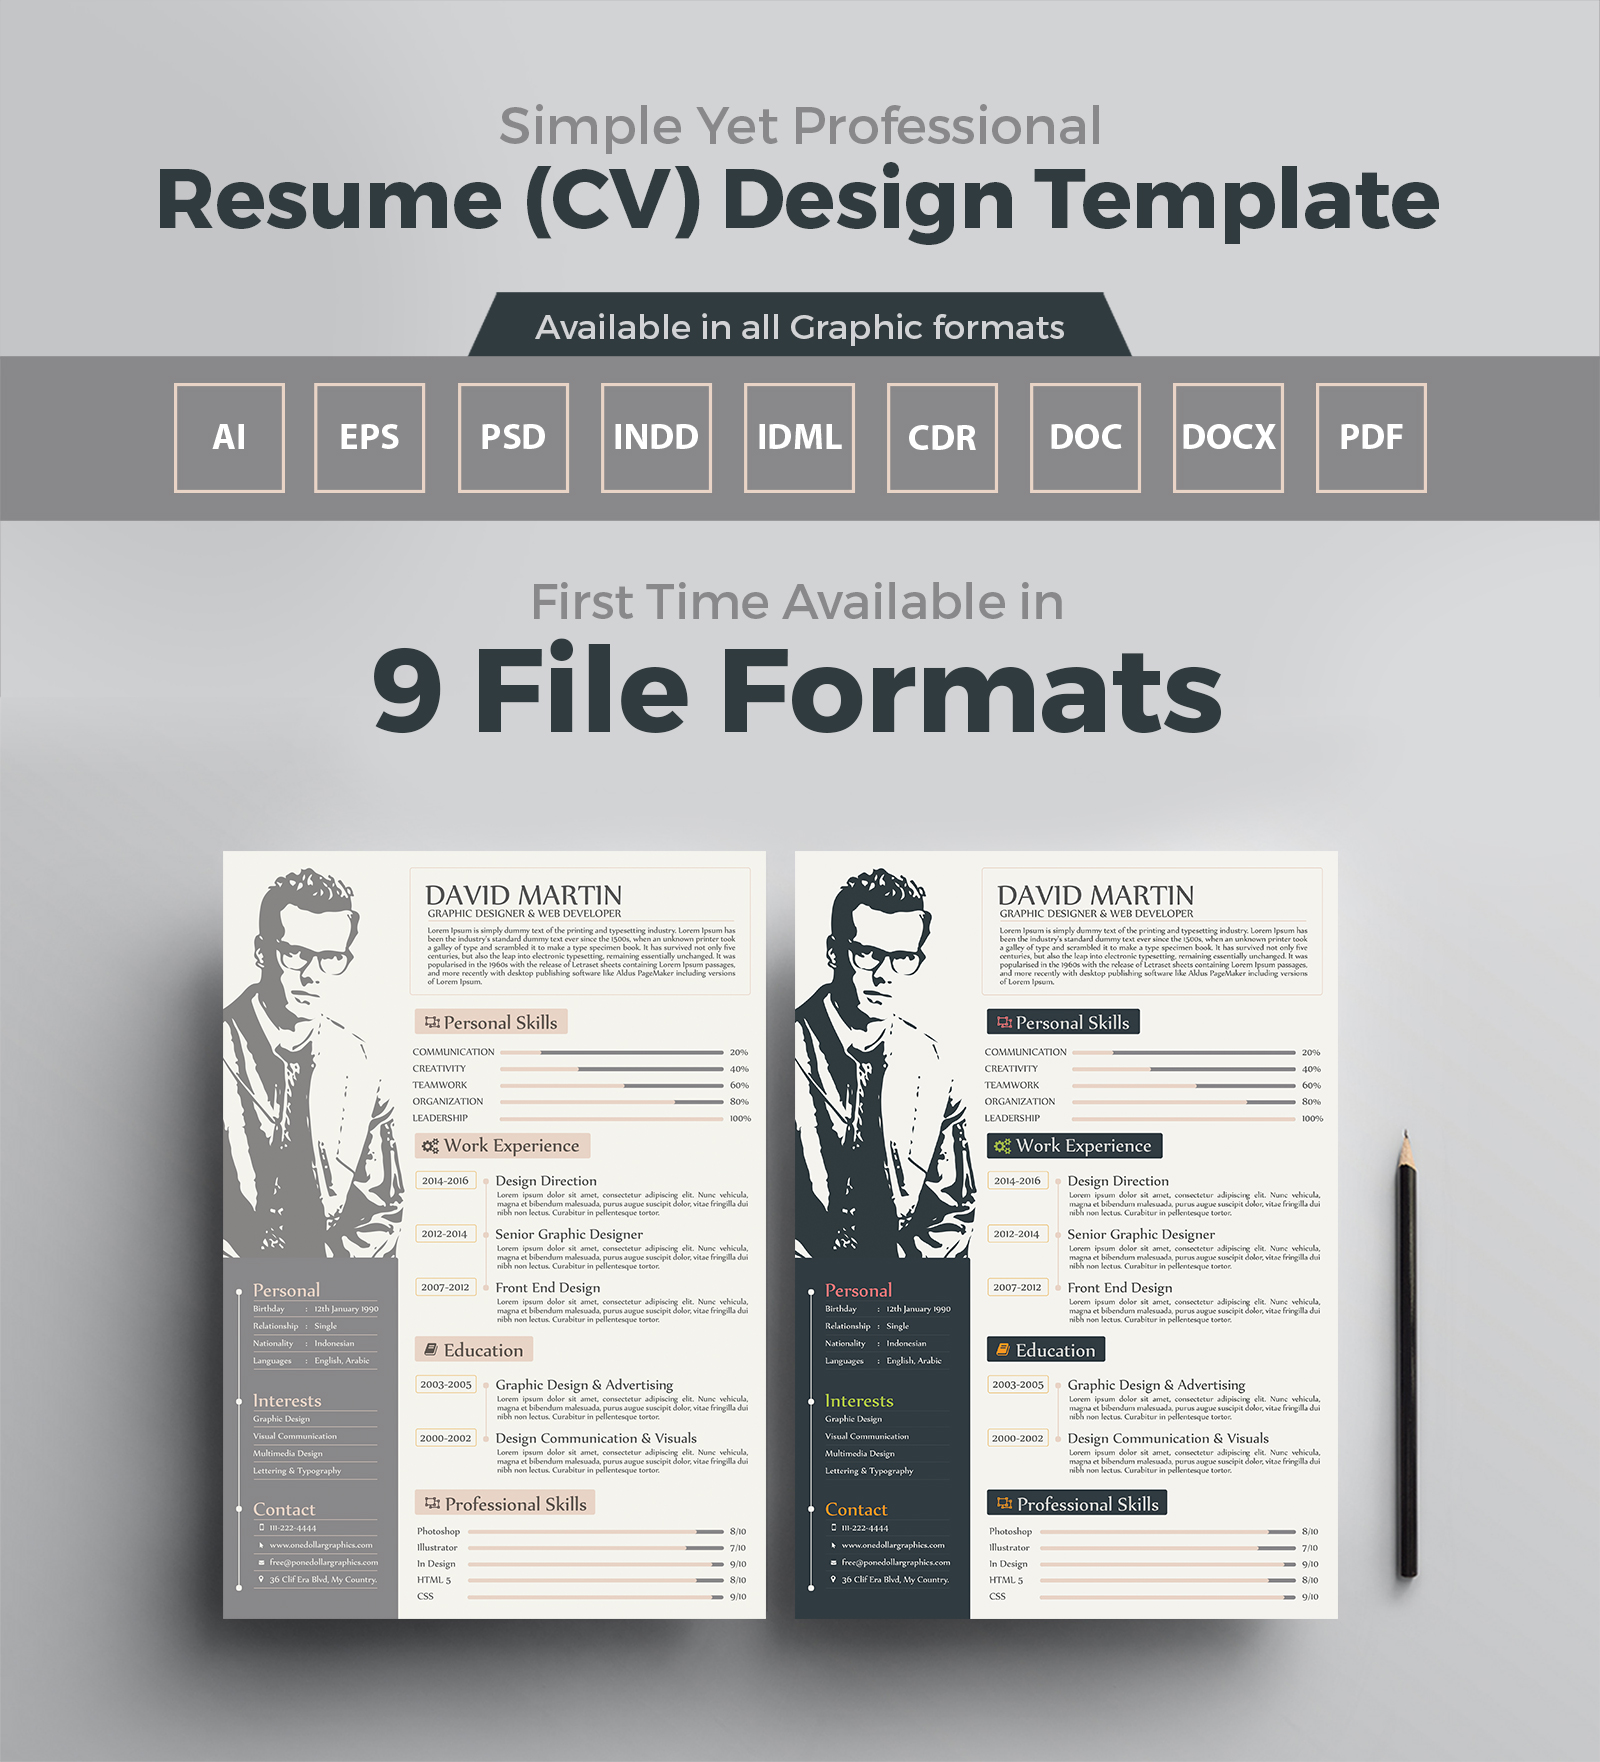 What Size Font Should A Resume Be Typed In Simple Yet Frofessional Resume Cv Design Templates